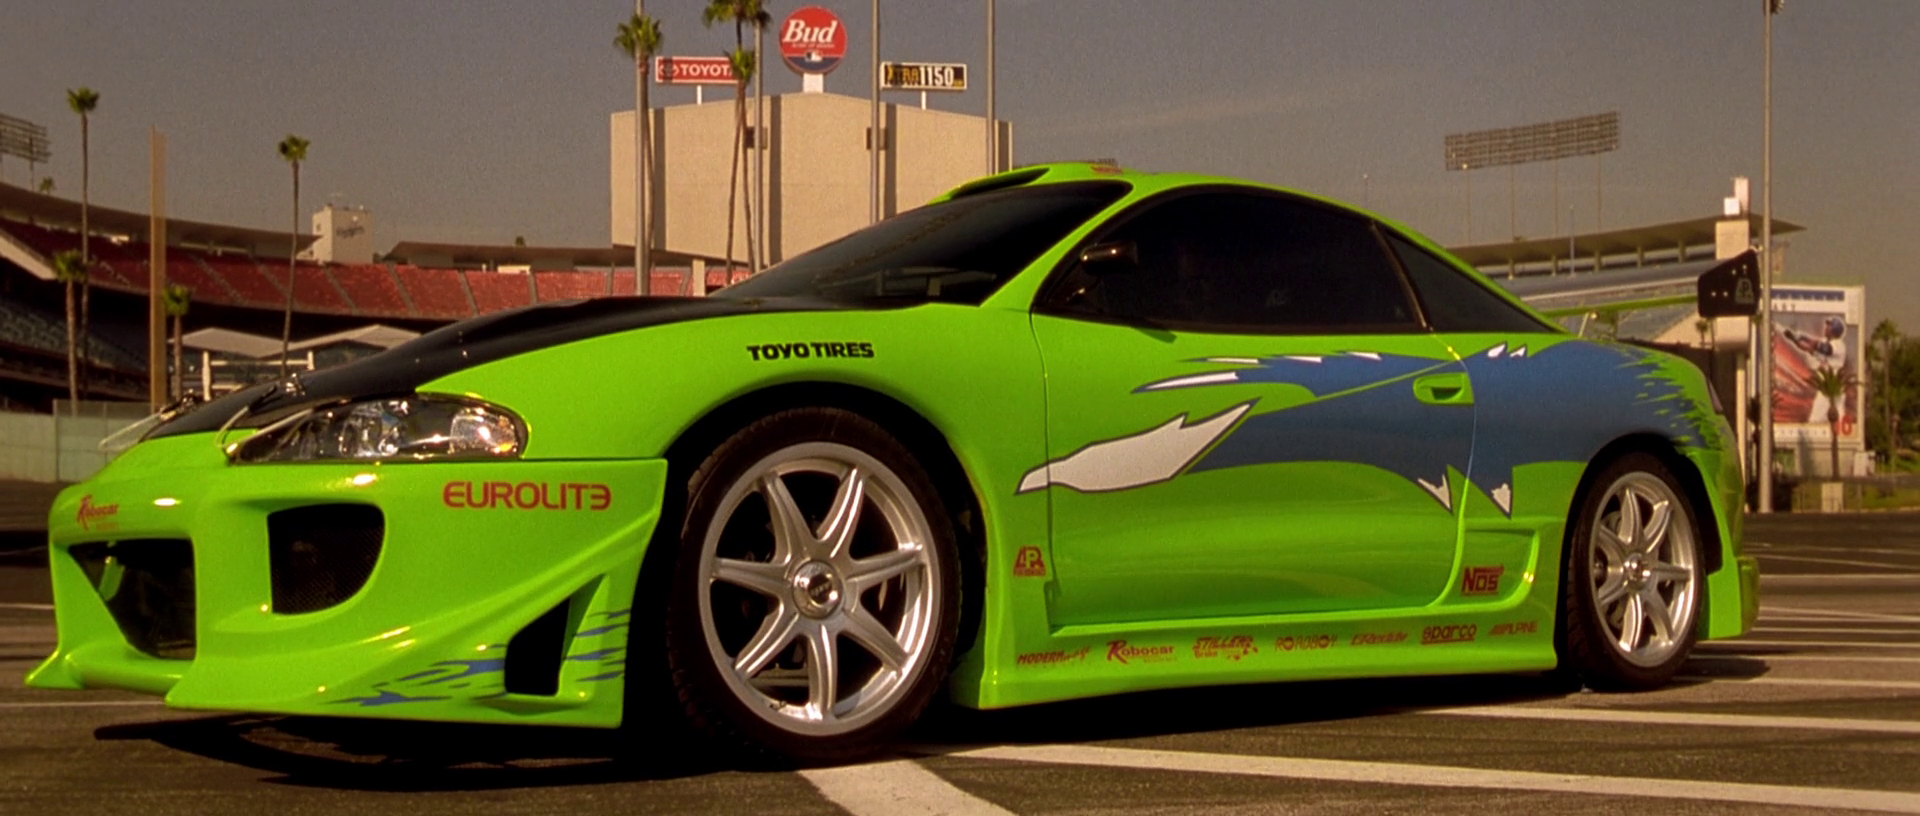 1995 Mitsubishi Eclipse | The Fast and the Furious Wiki